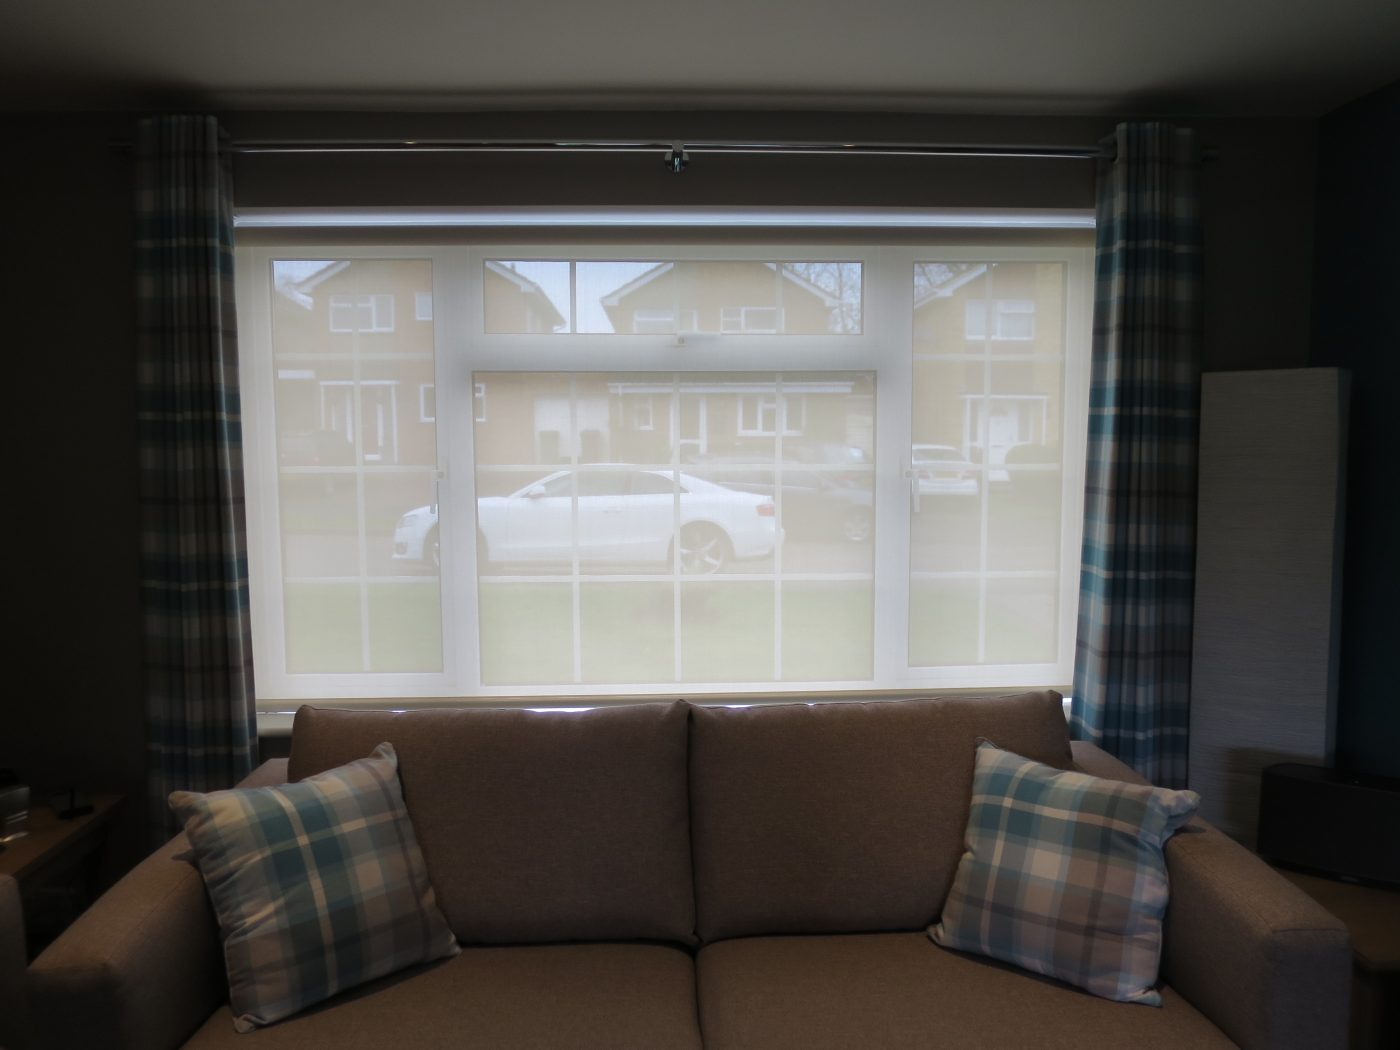 Battery Iphone Electric Roller Blinds Hampshire The